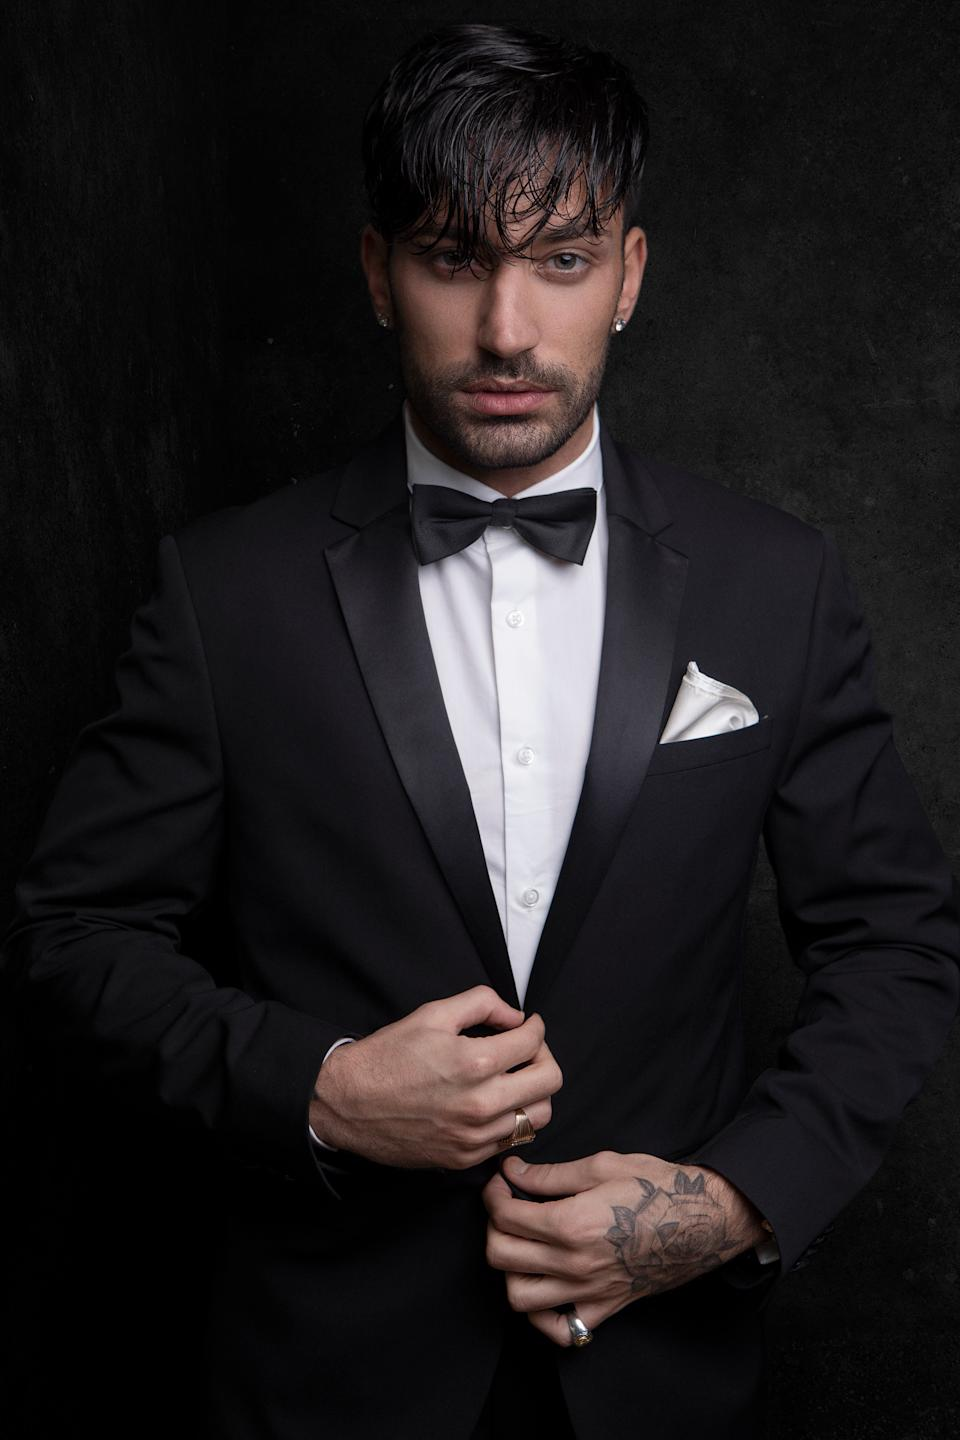 Giovanni Pernice is firmly focused on dancing.